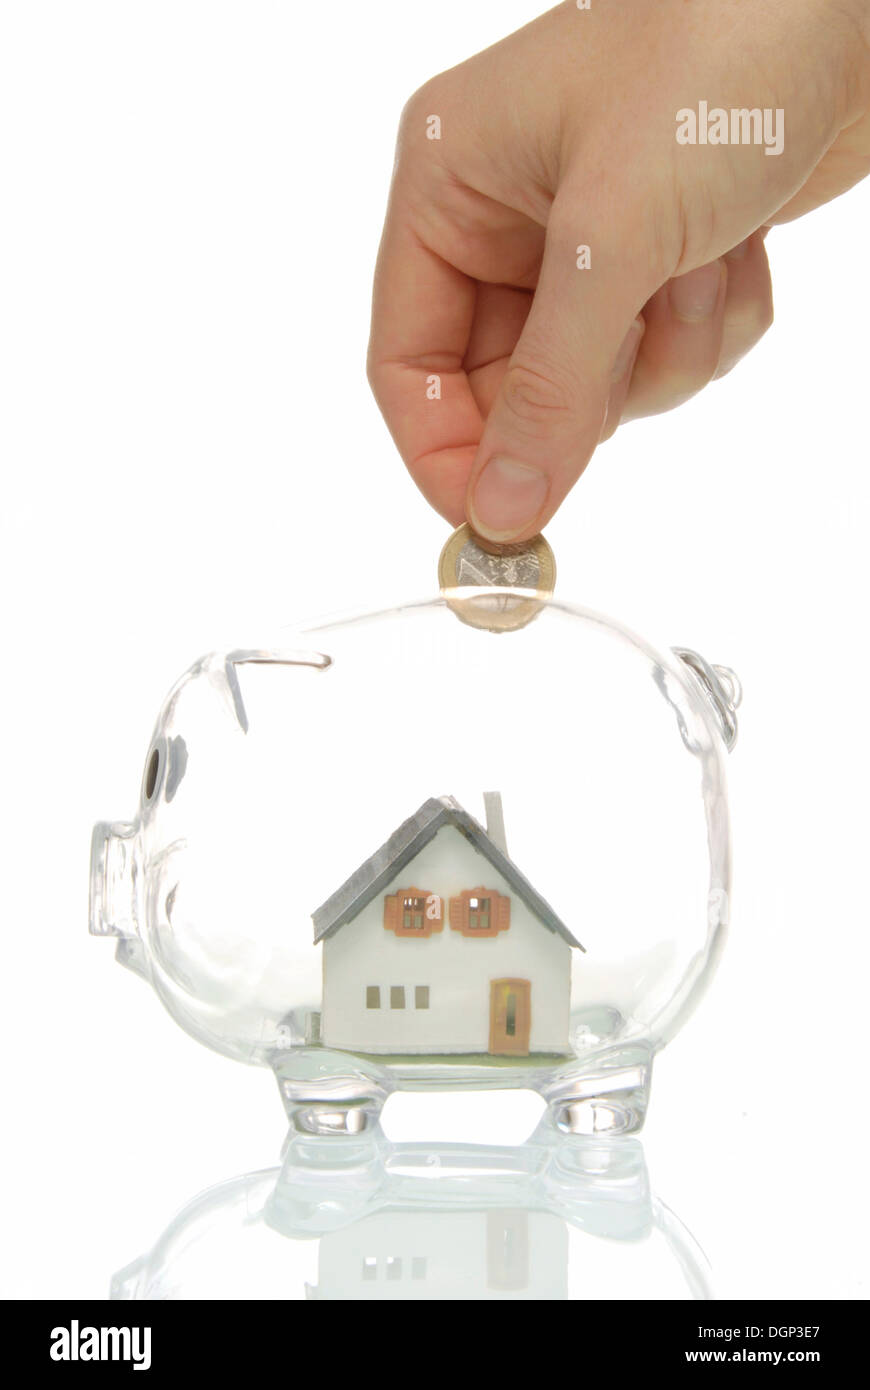 Hand putting coin into piggy bank with a house, symbolic image for building society savings - Stock Image